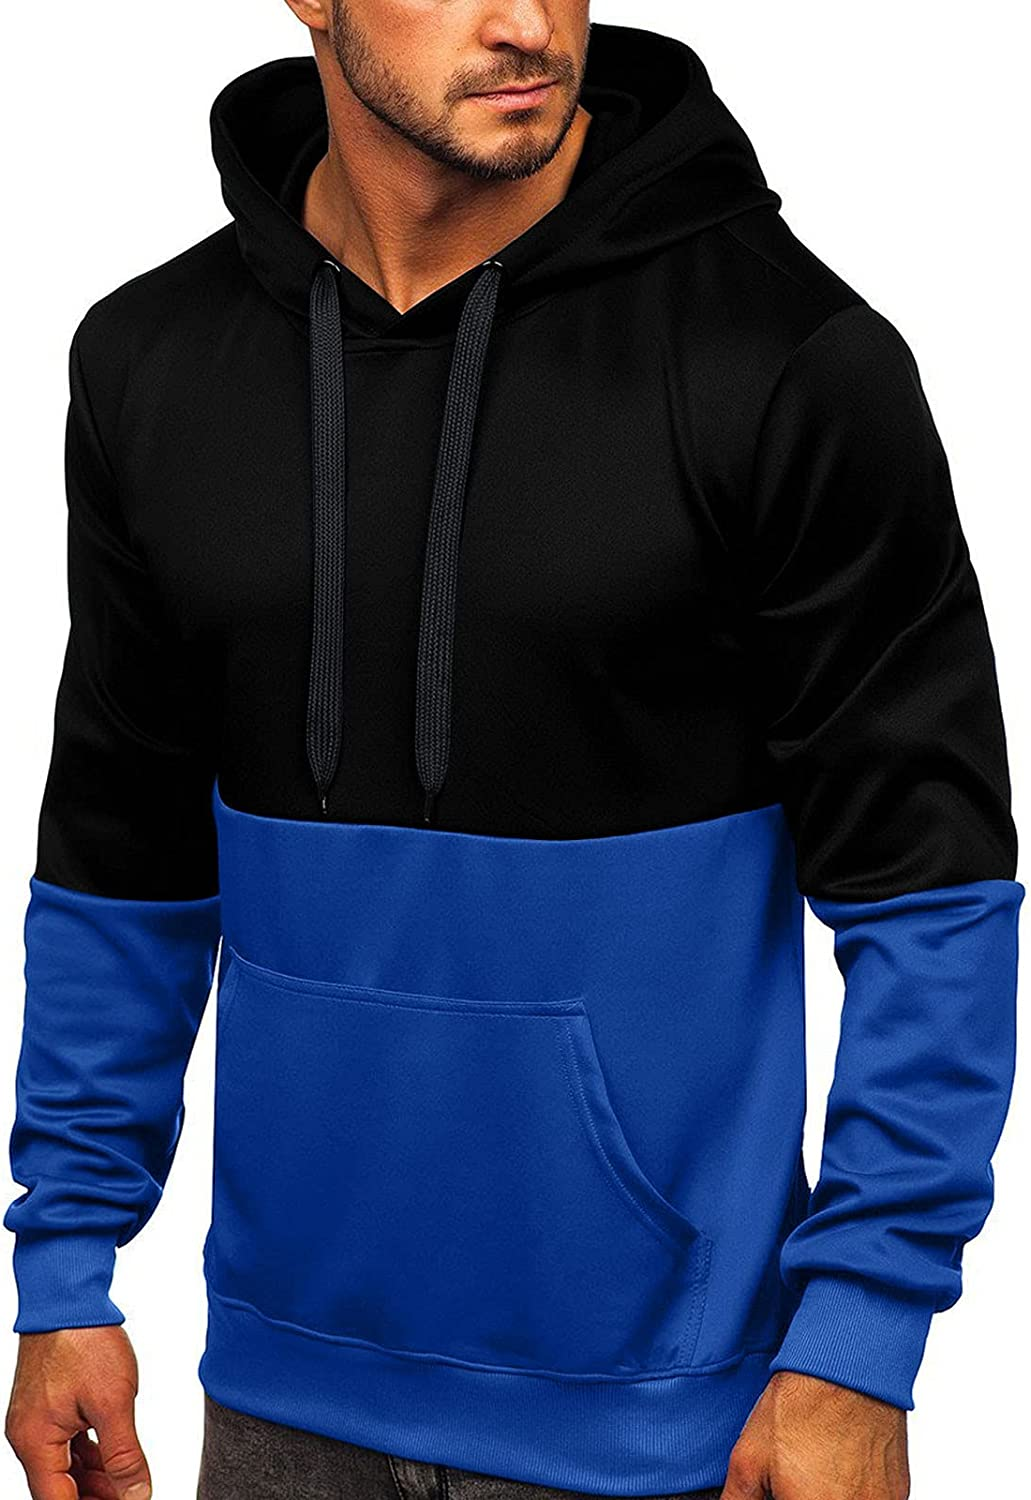 HONGJ Hoodies for Mens, Fall Color Block Casual Long Sleeve Pullover Hipster Drawstring Slim Fit Hooded Sweatshirts